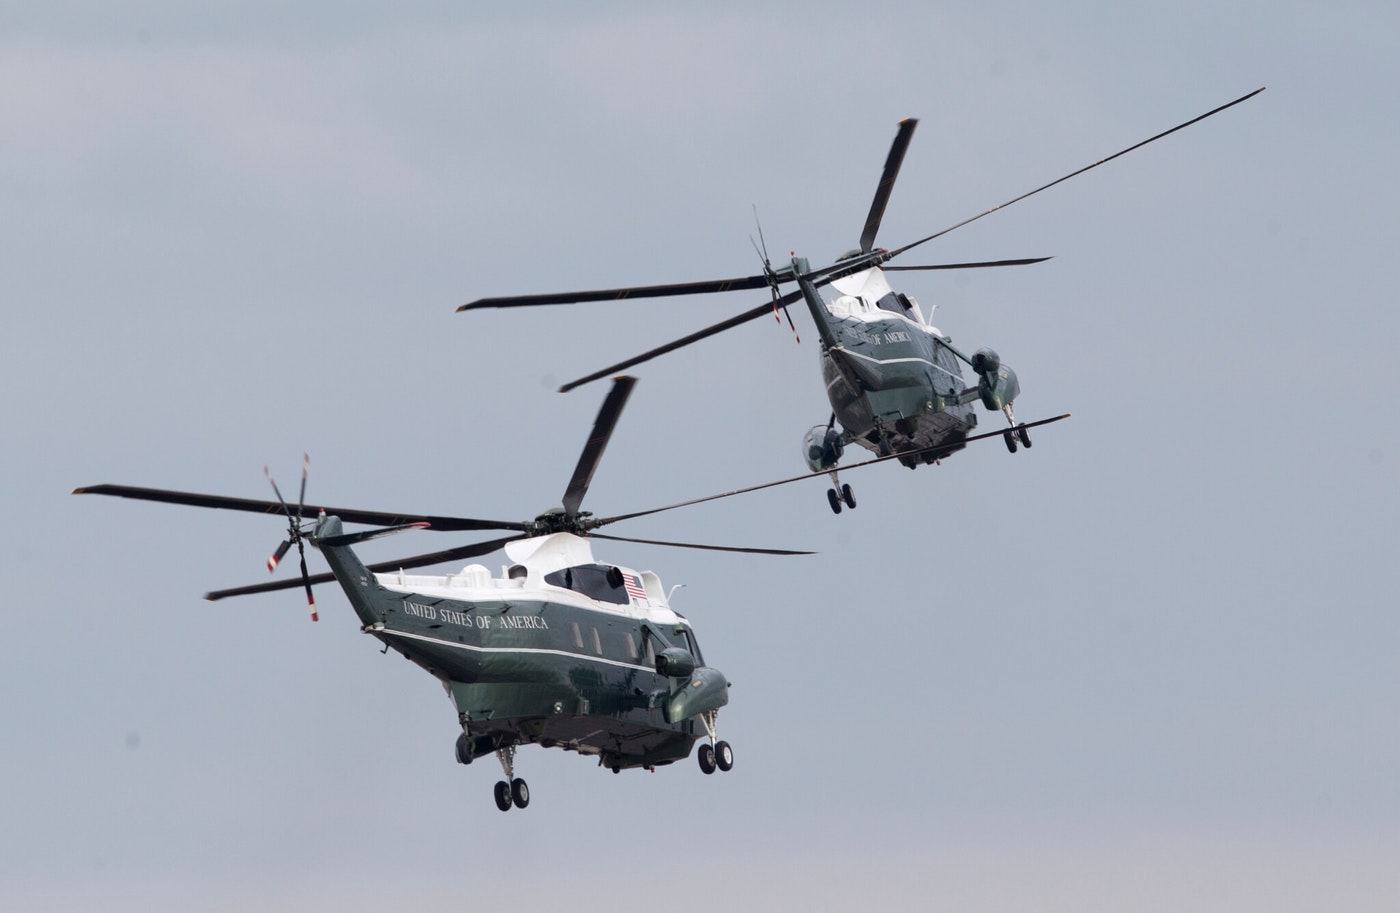 Two Marine Helicopter Squadron One (HMX-1) Sikorsky VH-3D Sea King helicopters depart Miami International Airport after a visit from then-President Barack Obama in 2015. (AP Photo/Wilfredo Lee)